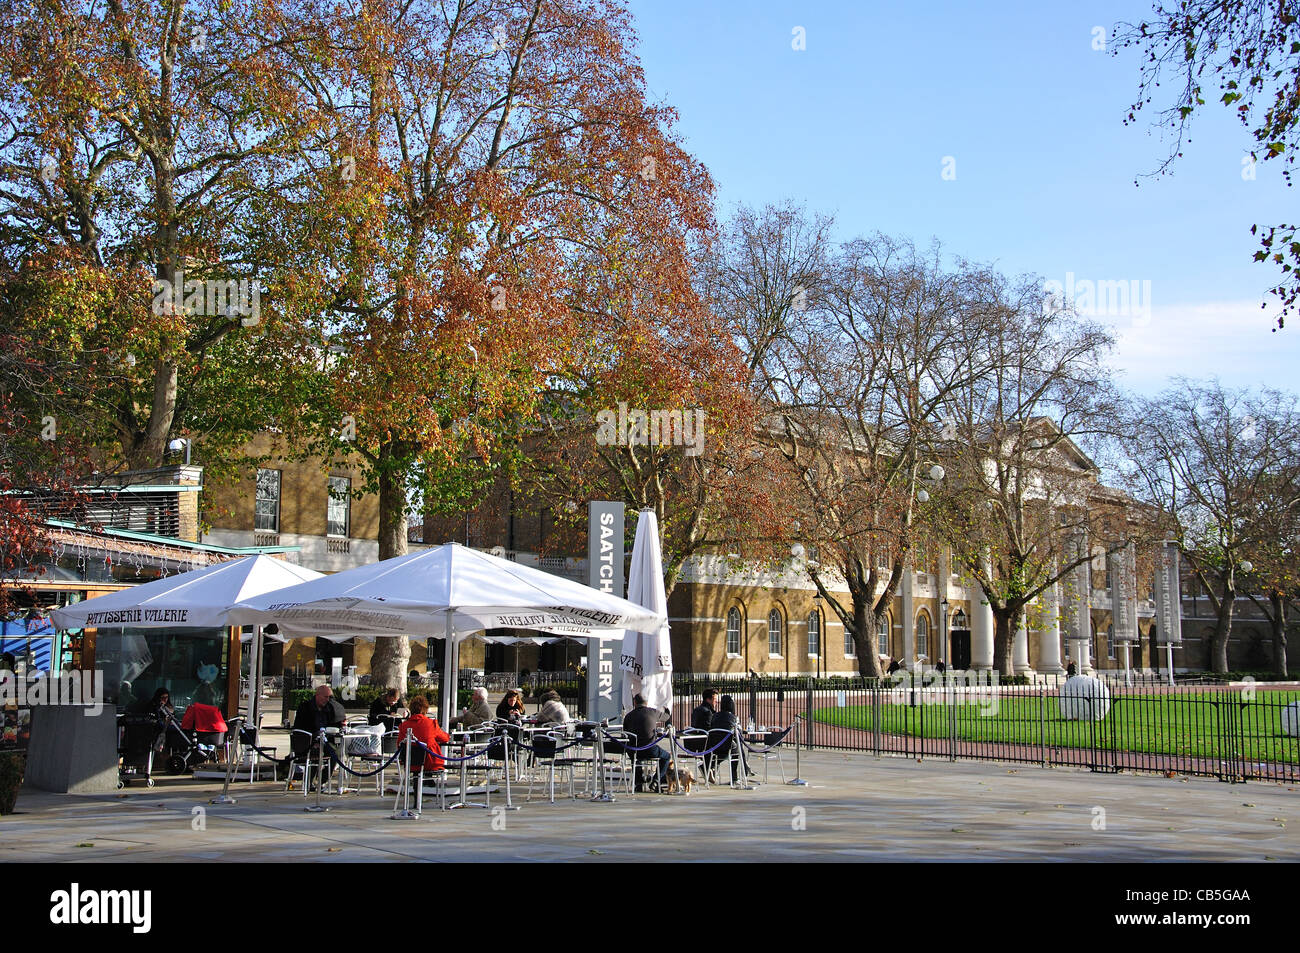 Saatchi Gallery, Kings Road, Chelsea, Royal Borough of Kensington and Chelsea, London, Greater London, England, Stock Photo